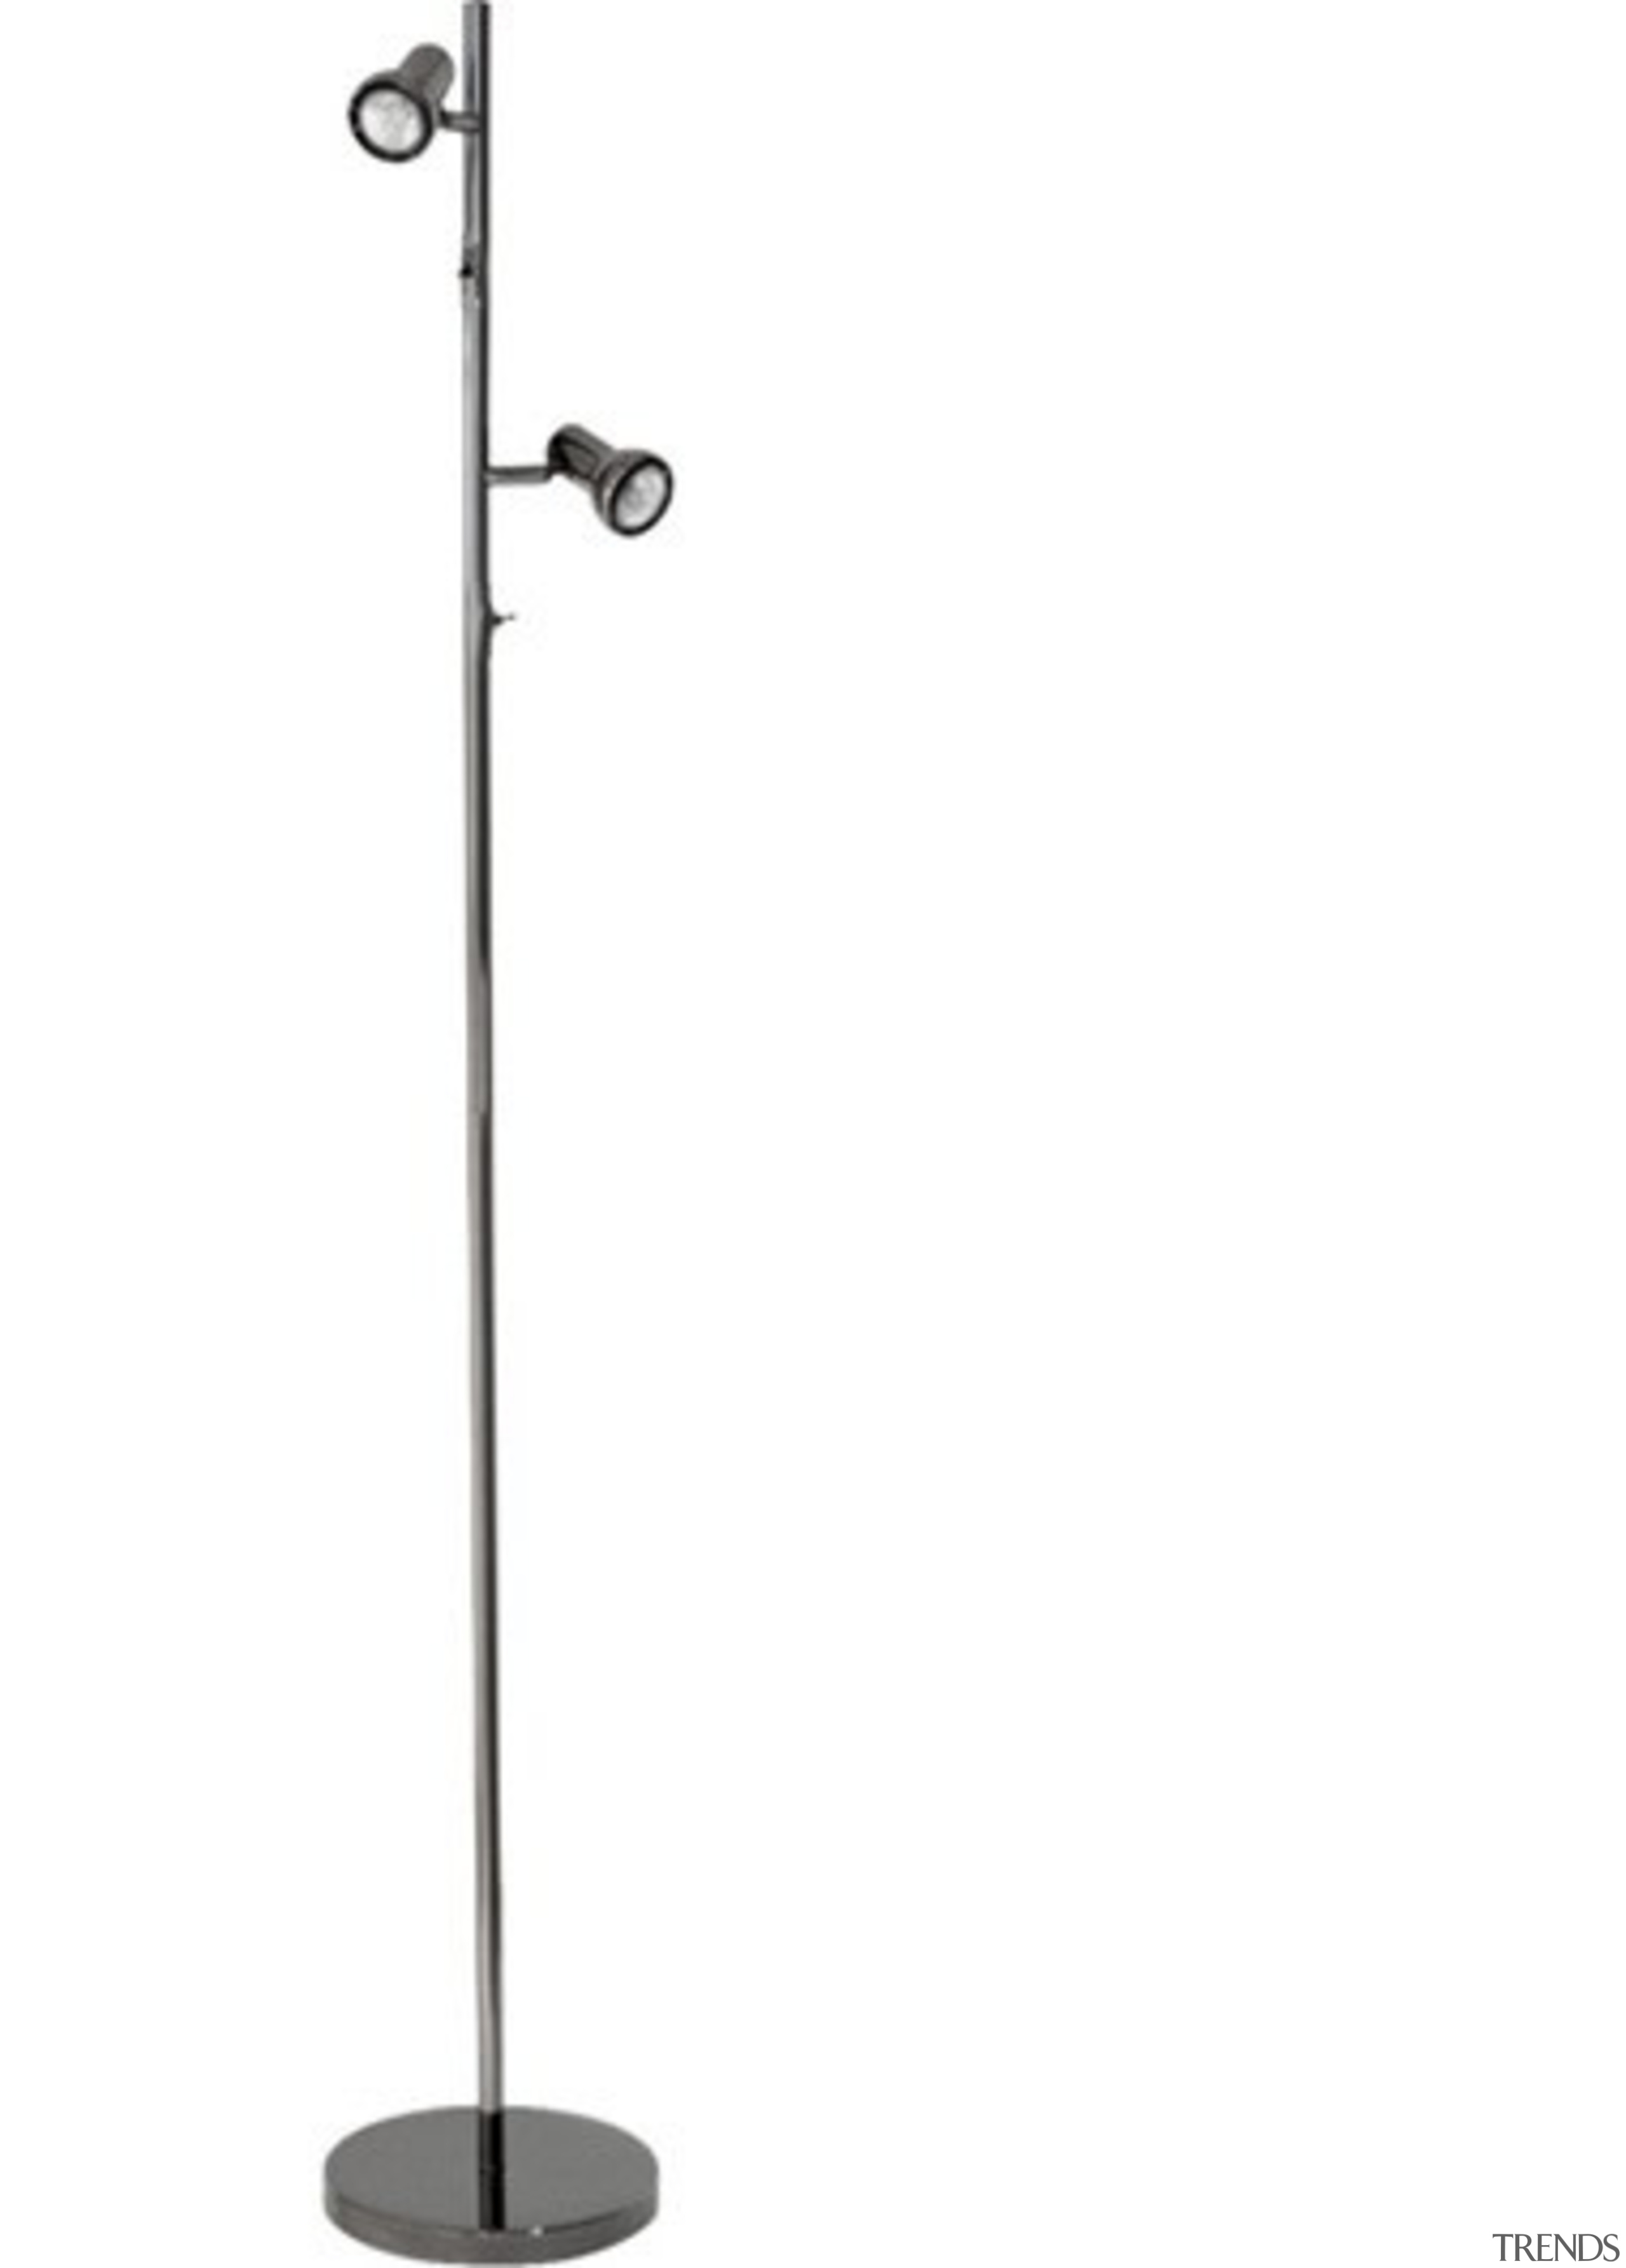 FeaturesThe Daxam features a minimalist contemporary design with light fixture, lighting, line, product design, white